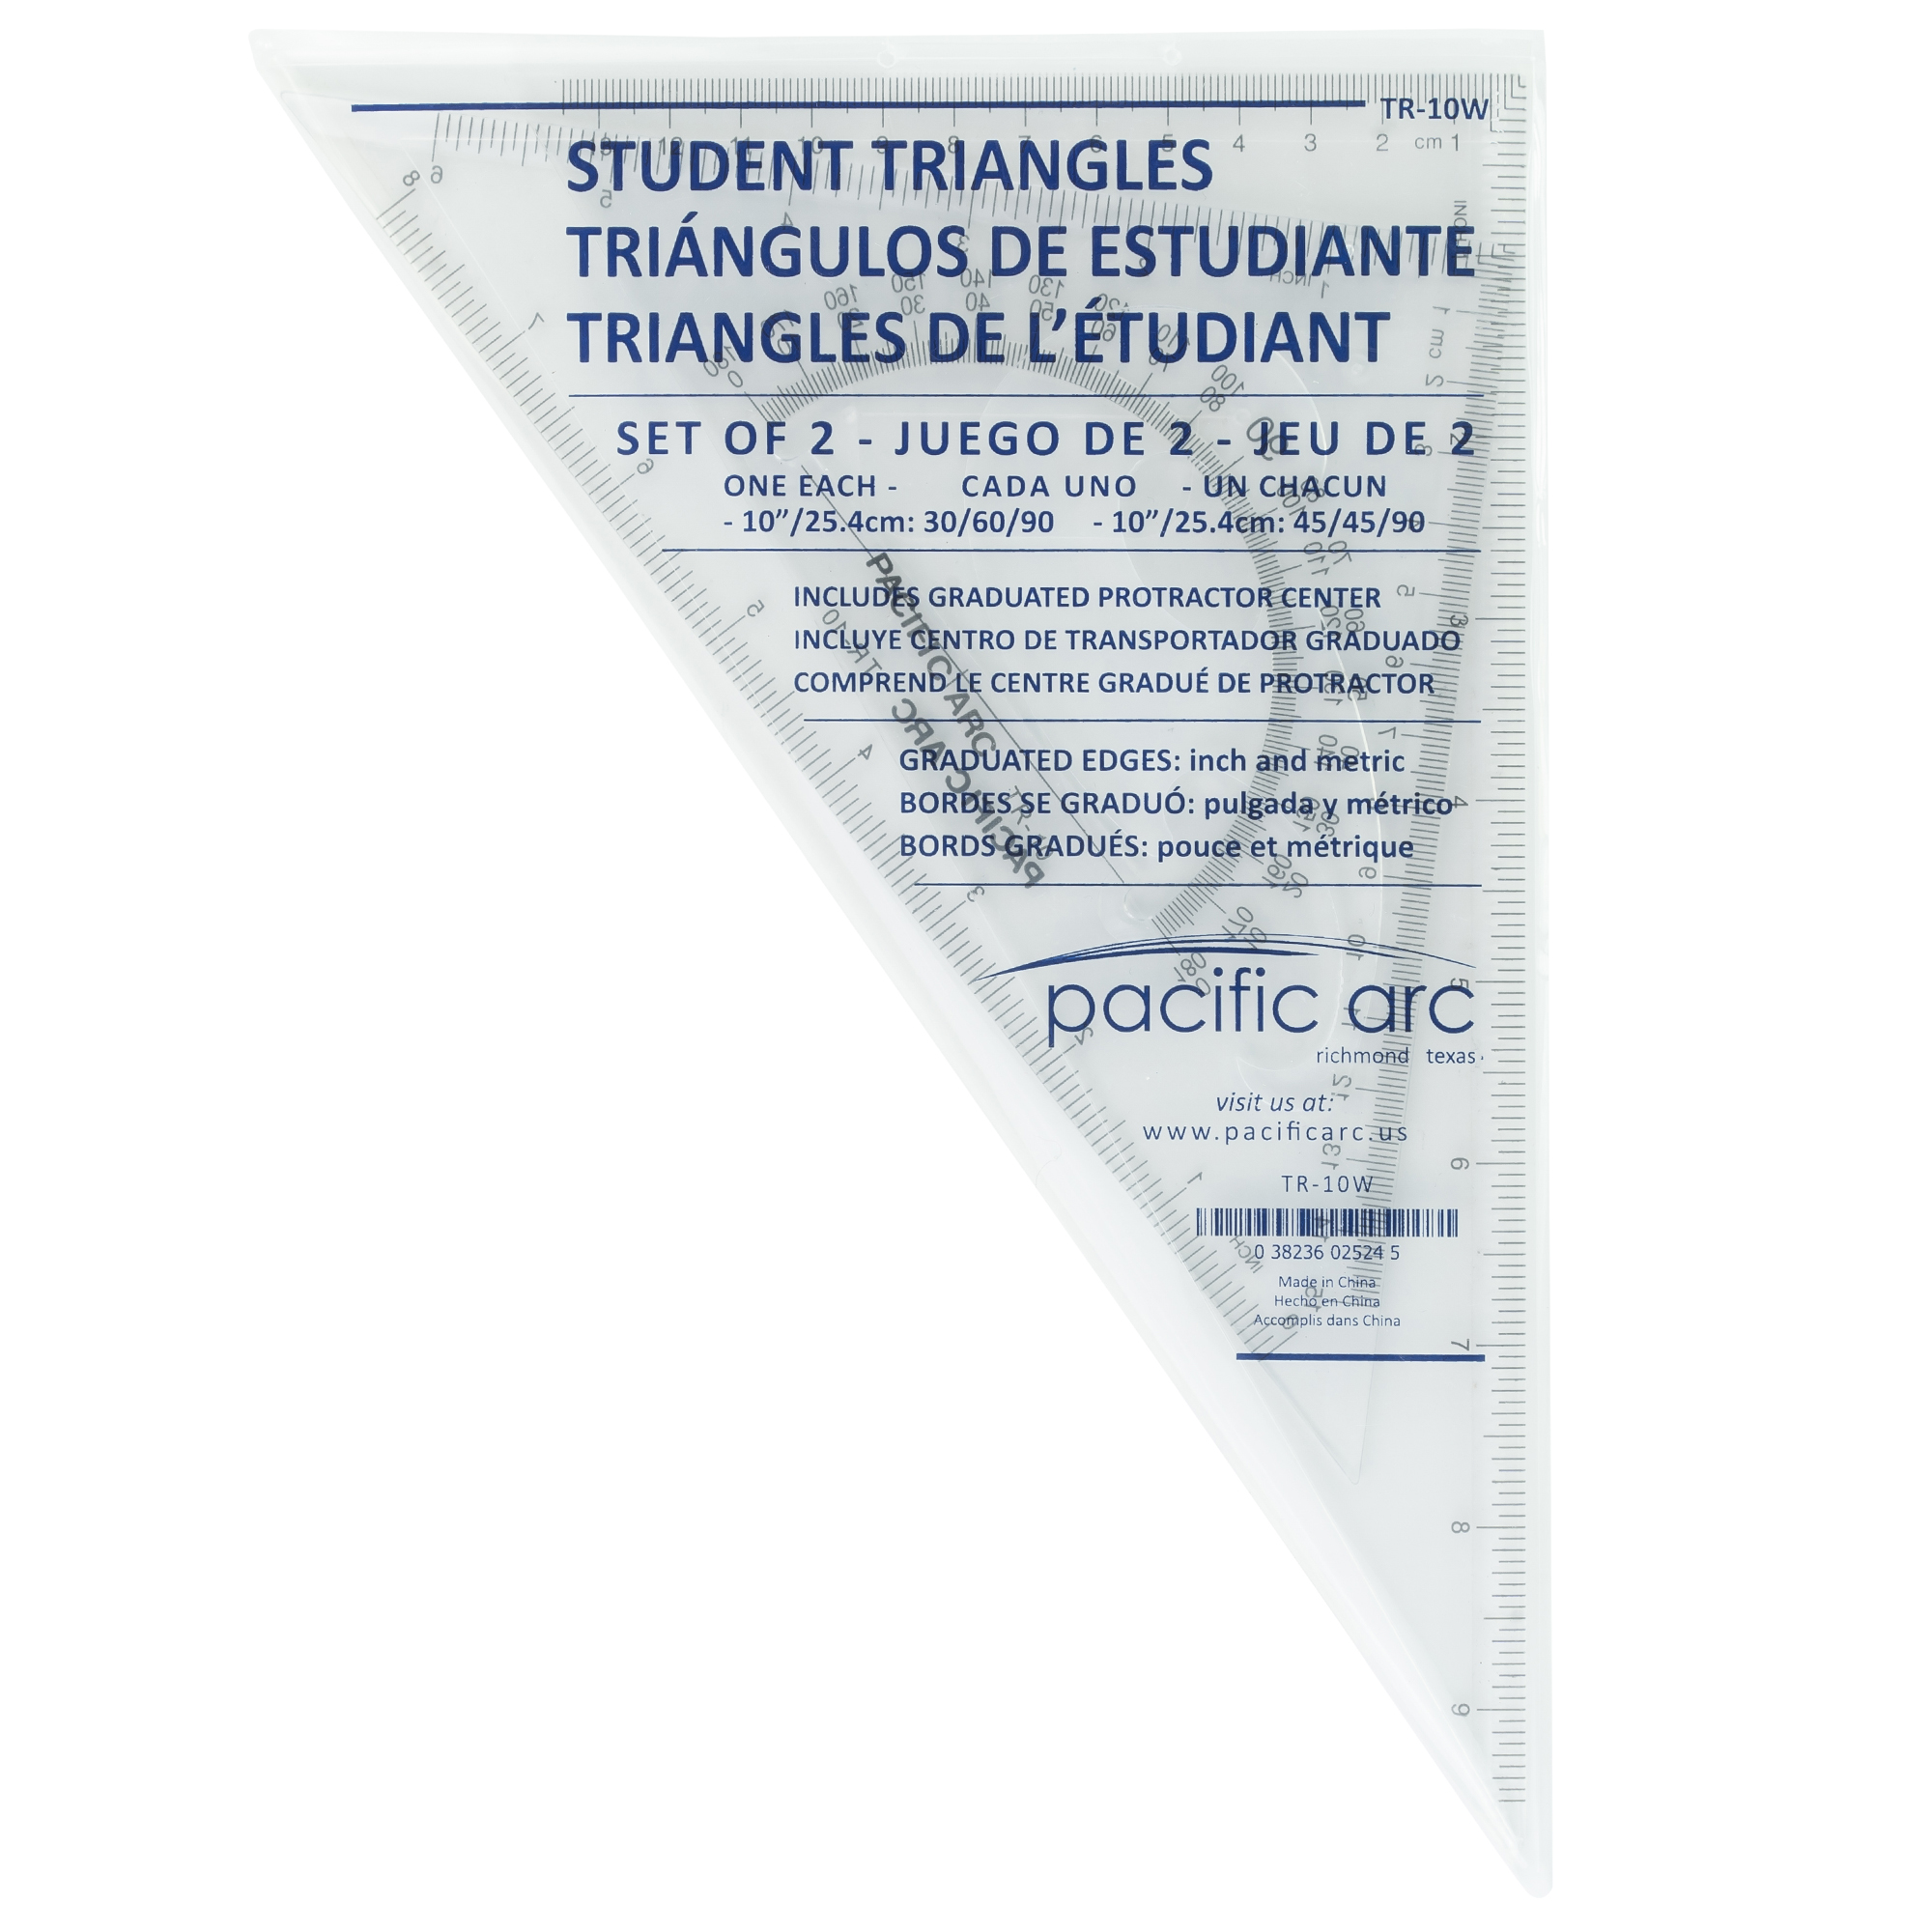 drafting triangles for scholastic use for school or class with protractor and french curve design inside the triangle by pacific arc